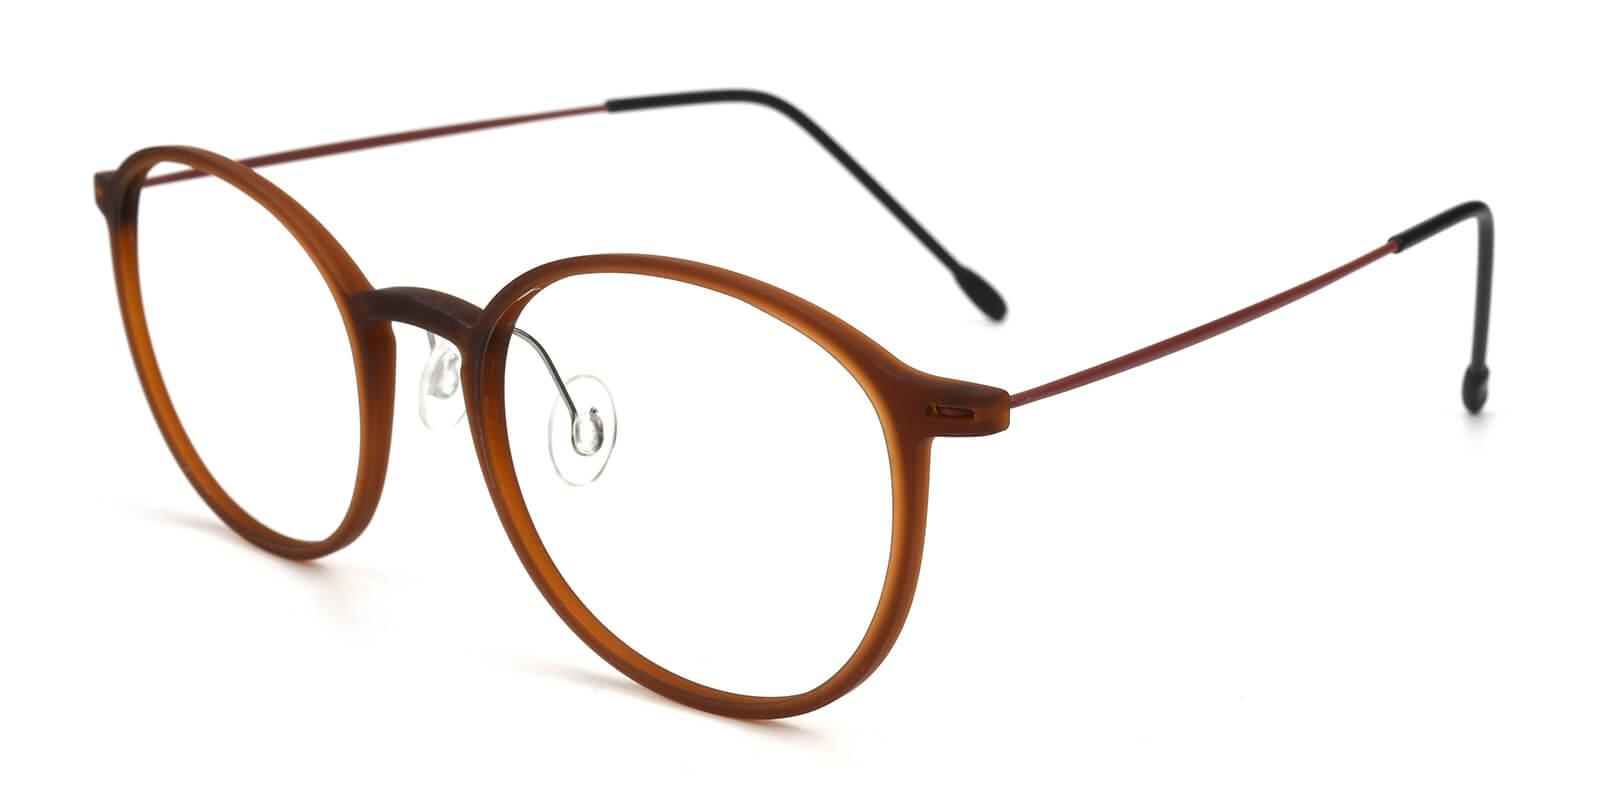 Yunda-Brown-Round-Combination-Eyeglasses-additional1